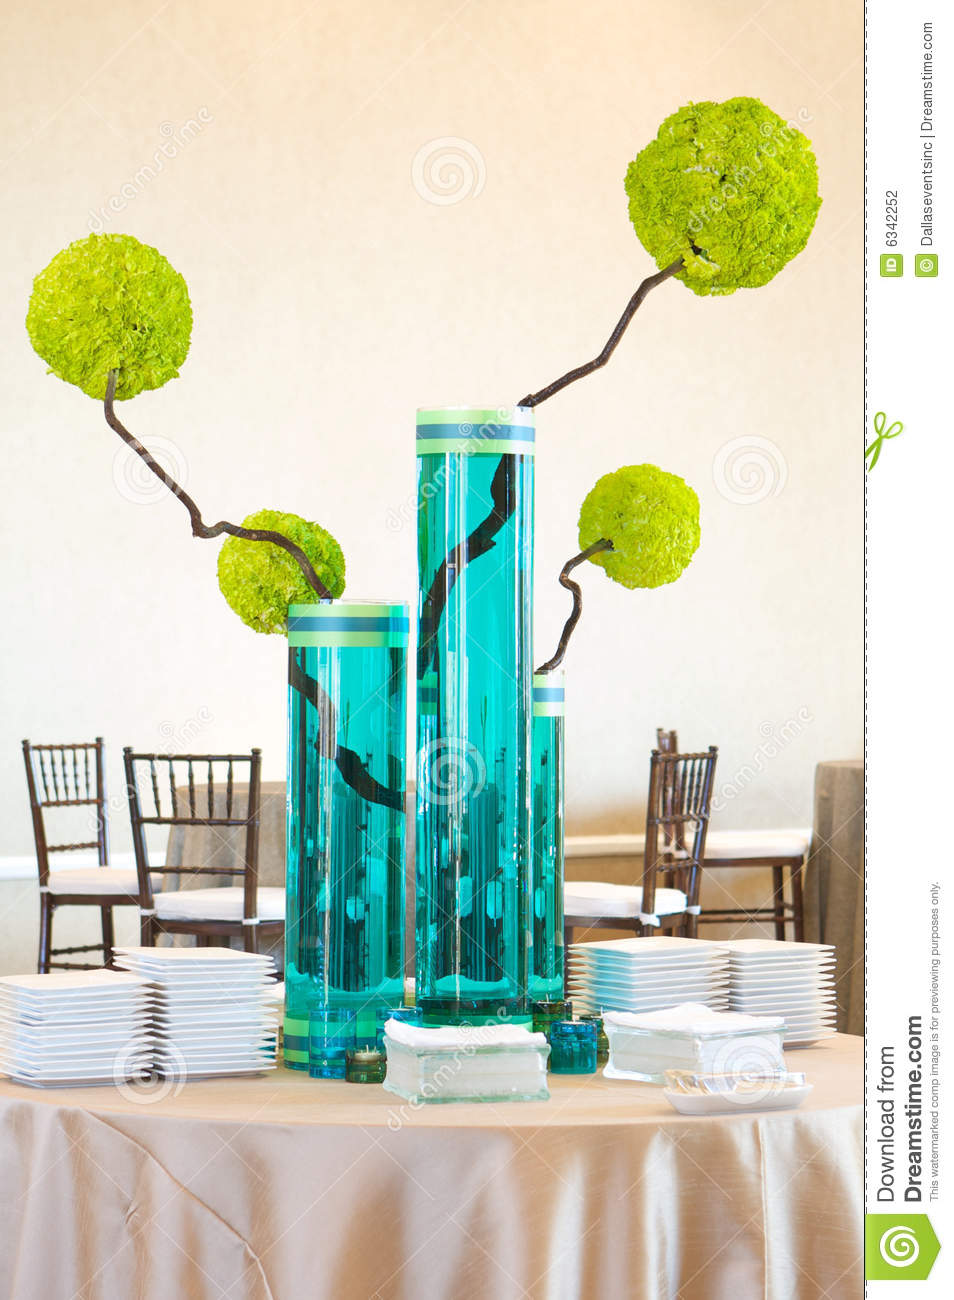 Image Result For Dining Table Centerpiece